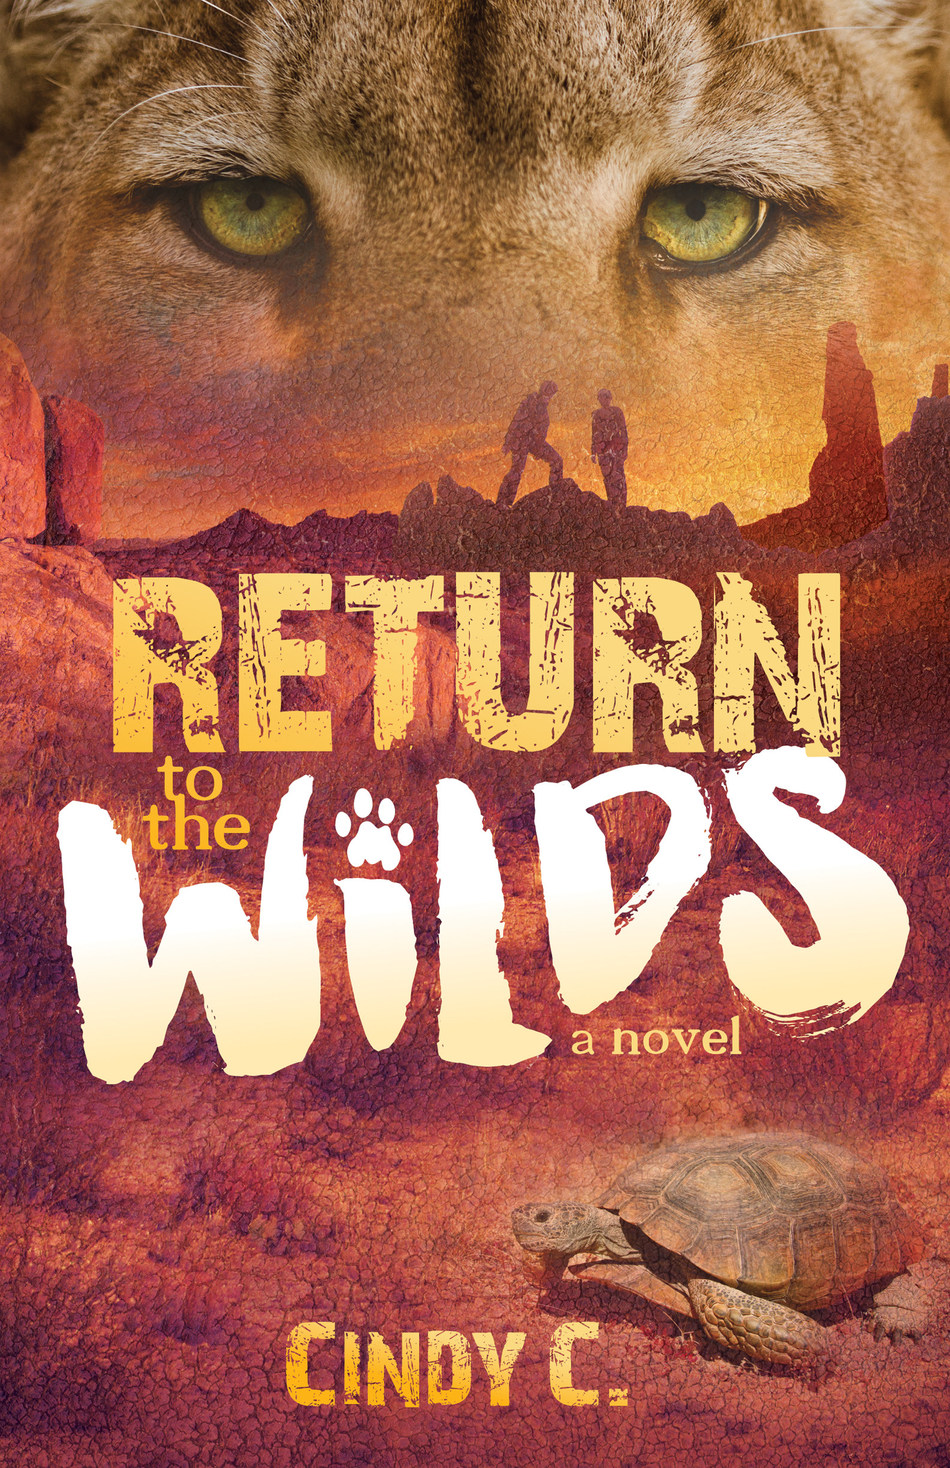 Cindy C new youth book Return to the Wilds to publish April 23, 2019